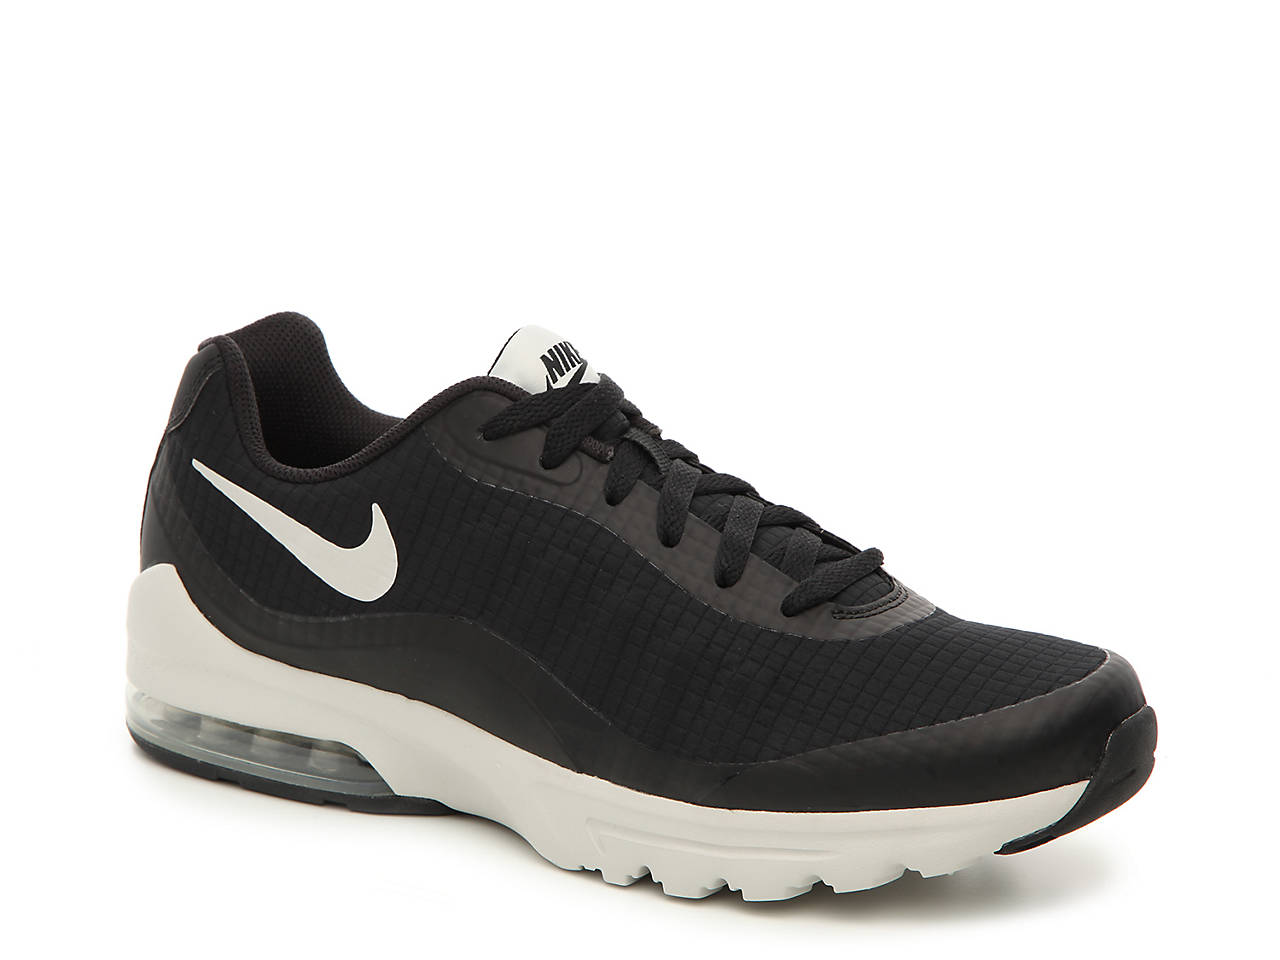 Air Max Invigor SE Sneaker - Men's